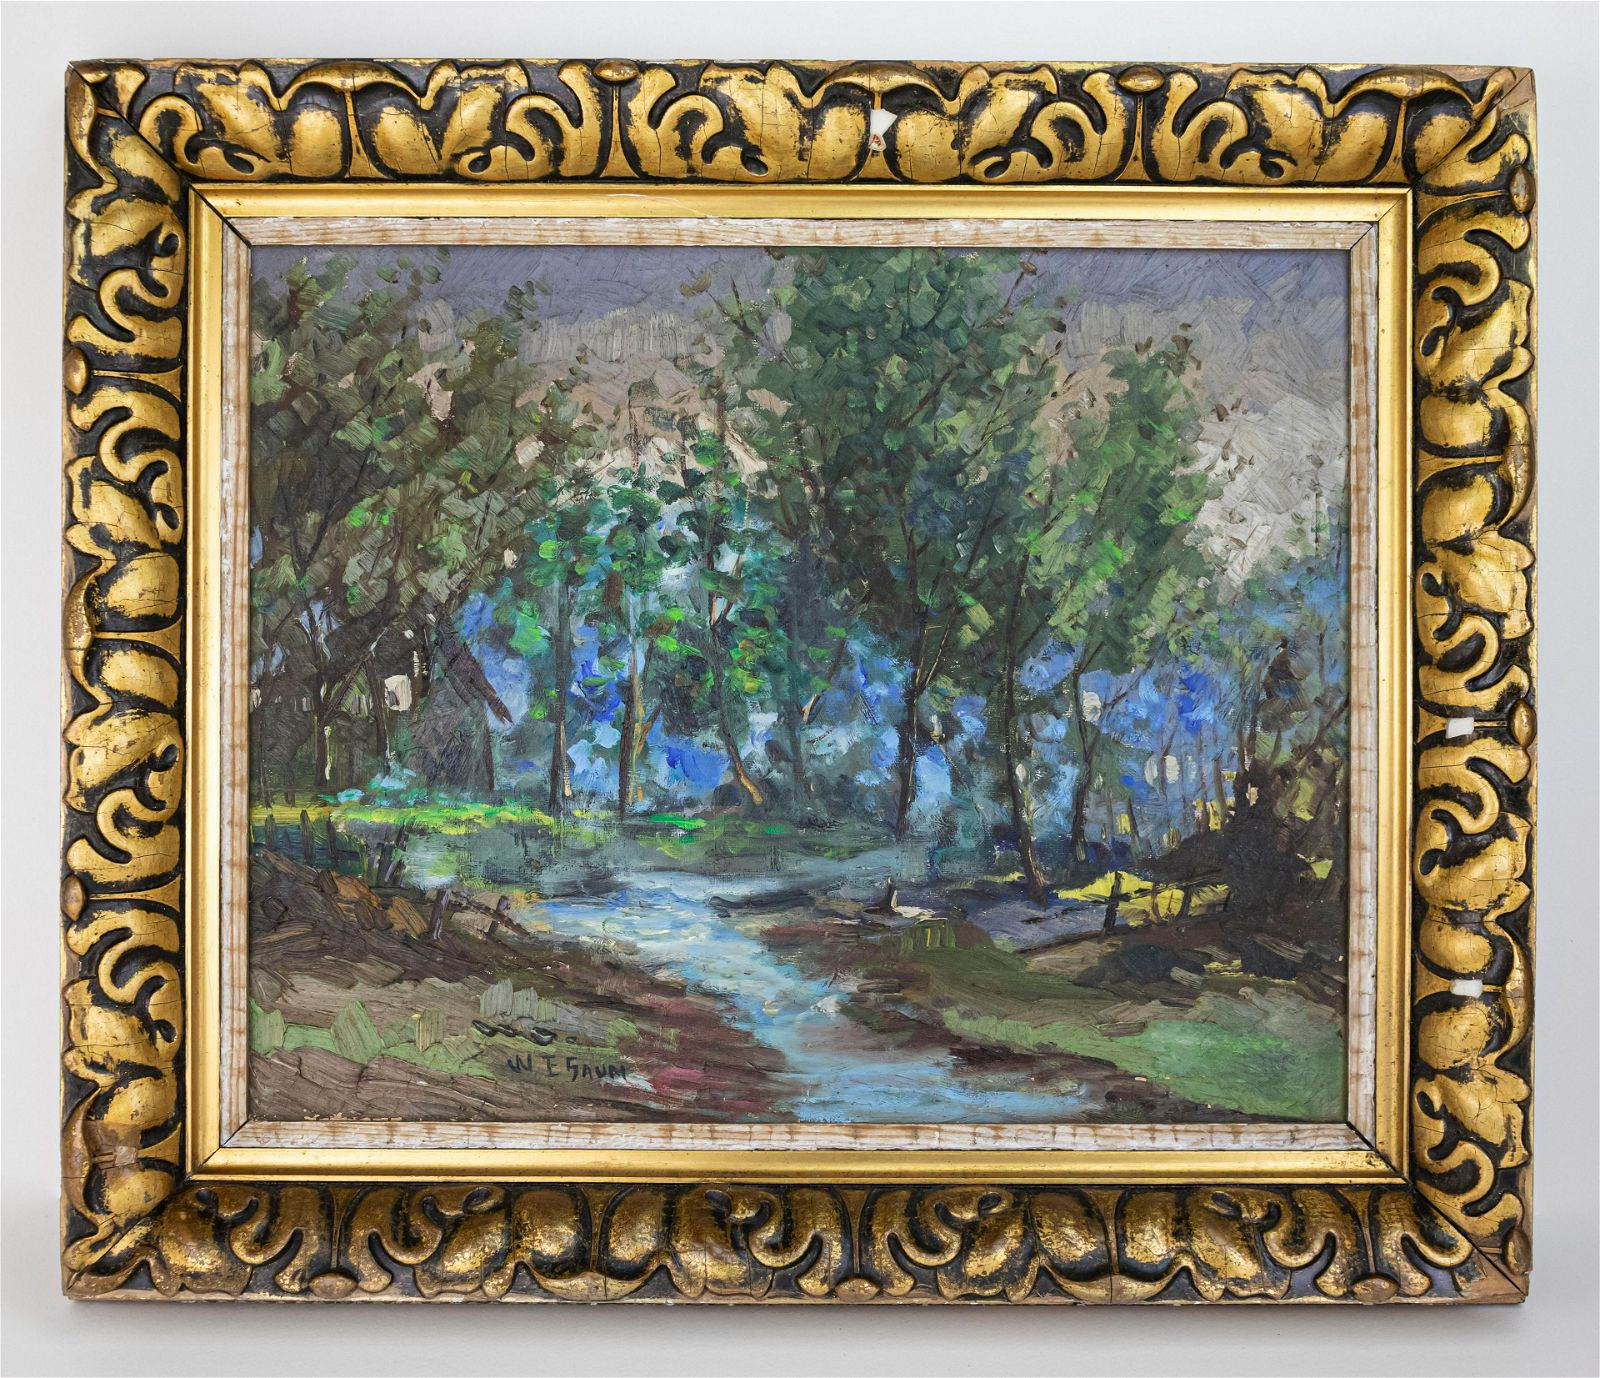 Walter Emerson Baum Painting In the Style of